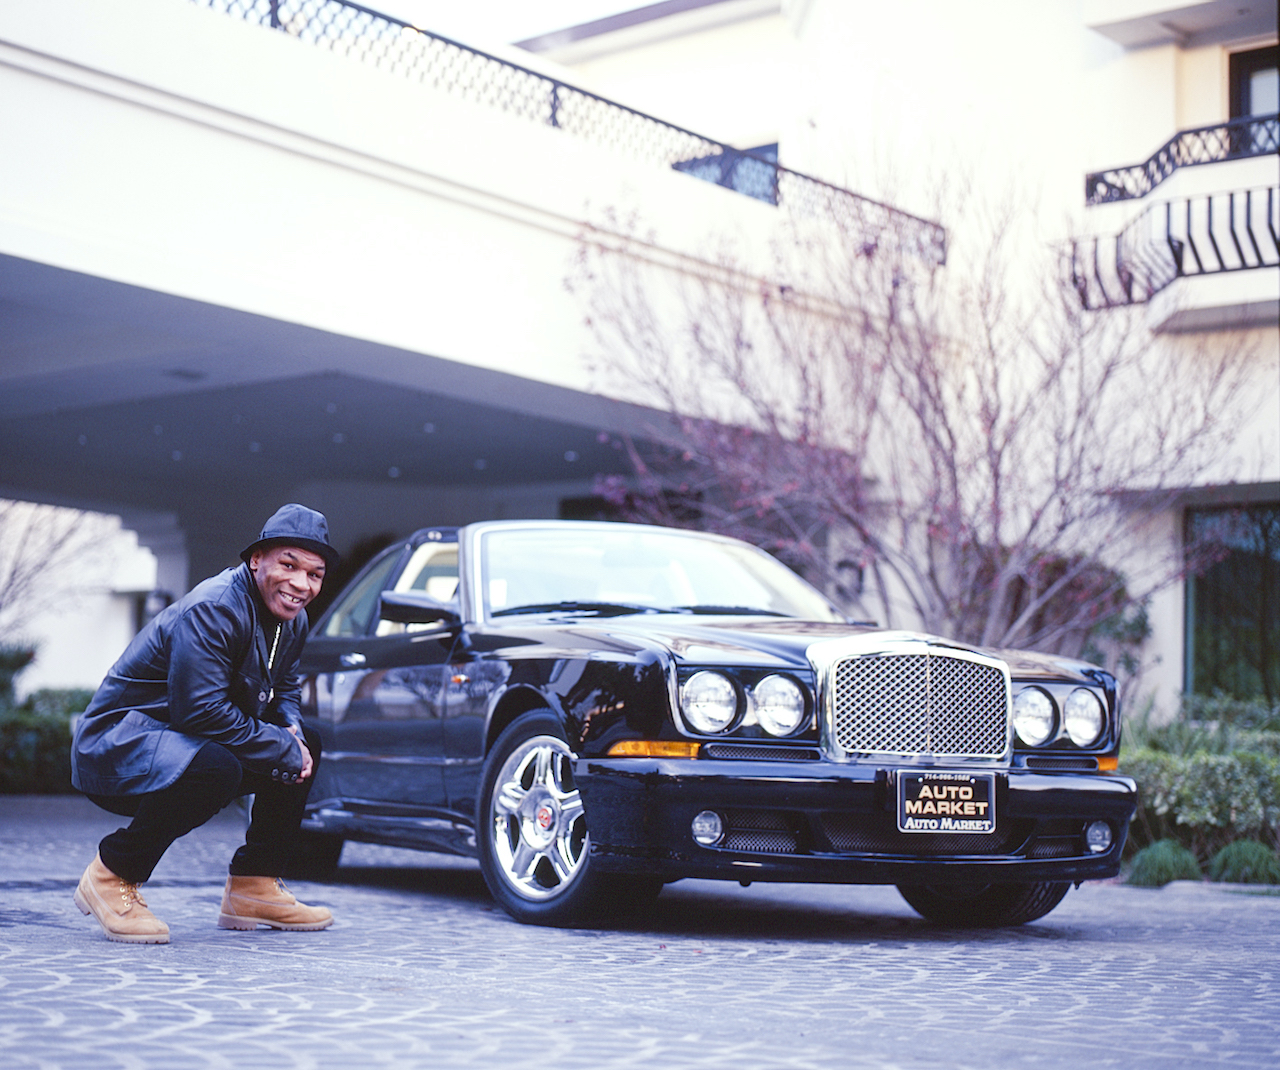 Mike Tyson poses at his home in 2000 with his Jaguar and Bentley